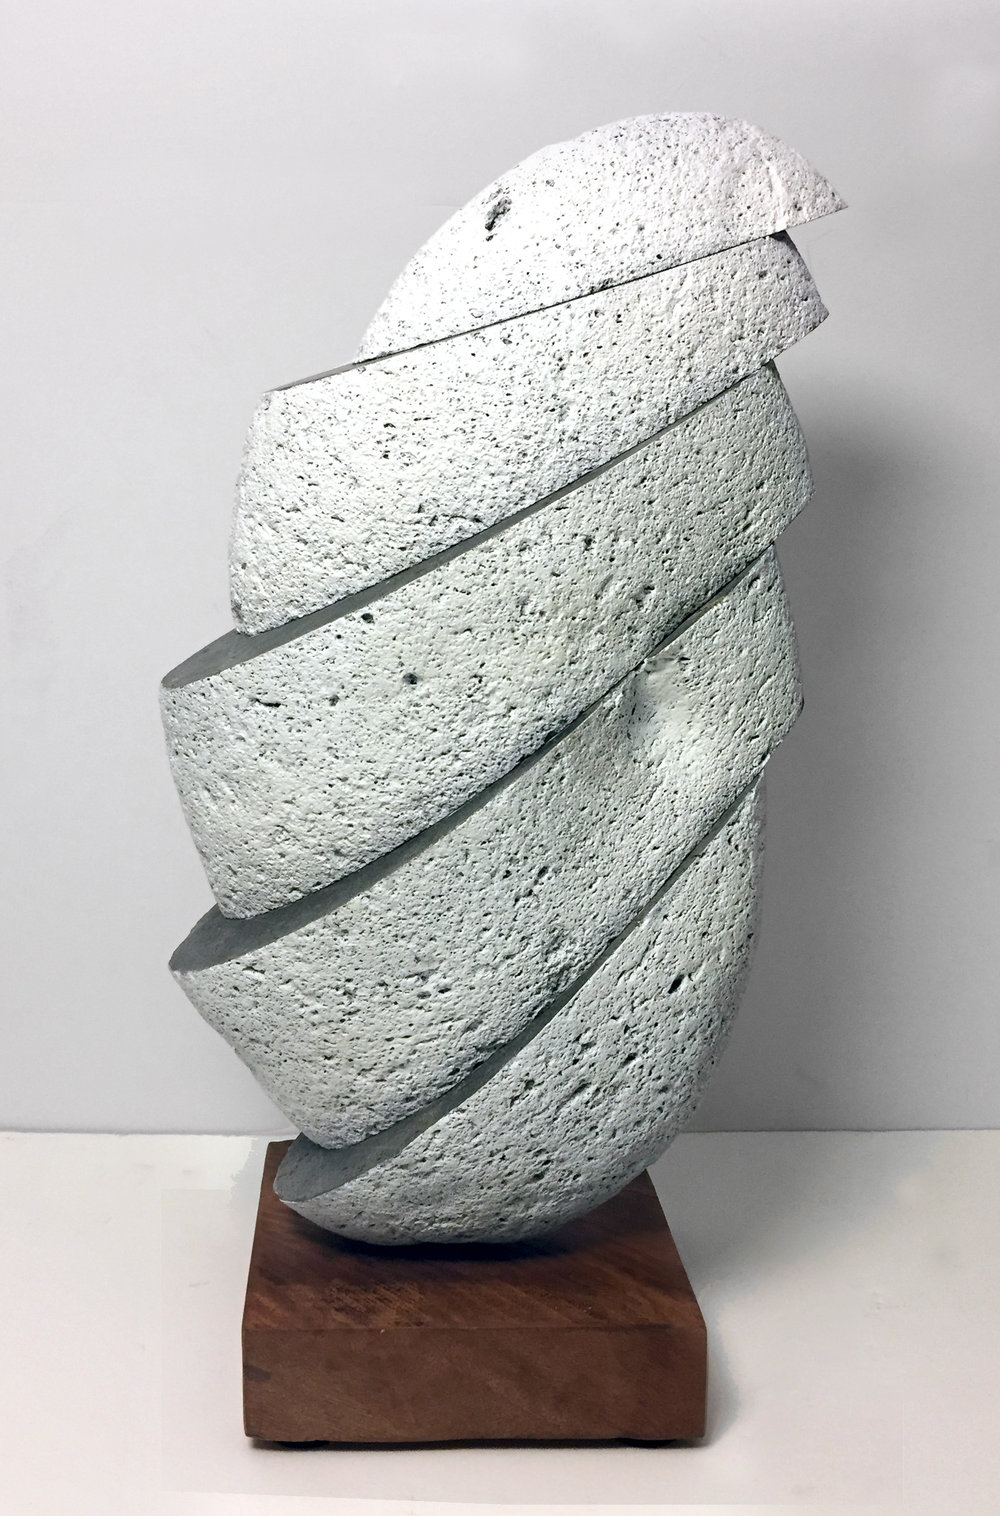 "$1300 - Whitewashed Stone, 18""x11""x5"", Basalt and Wood"